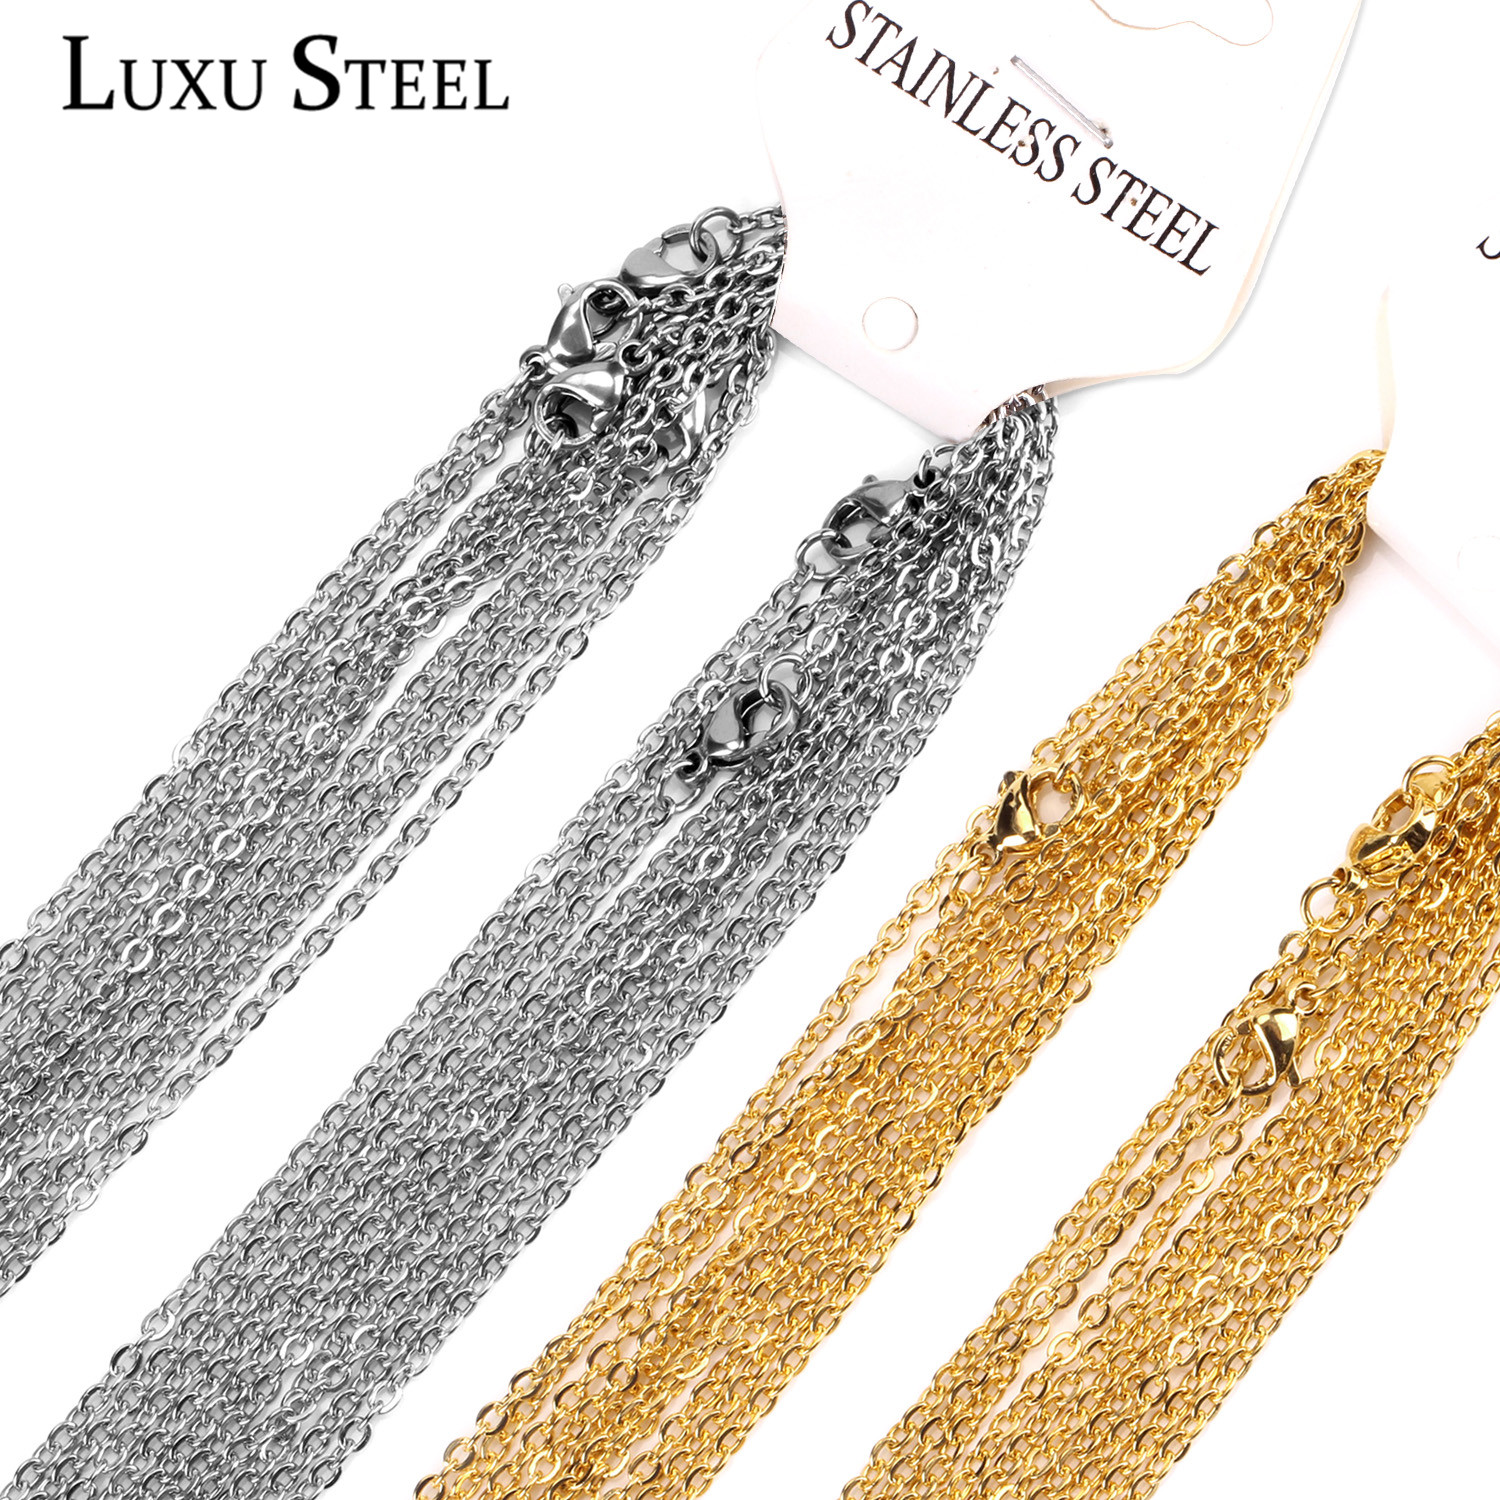 LUXUSTEEL Gold Chain Necklaces 10pcs/lot 2mm/1mm Stainless Steel Rolo Link Cuban Chain Long Necklace Pendants DIY Jewelry Party